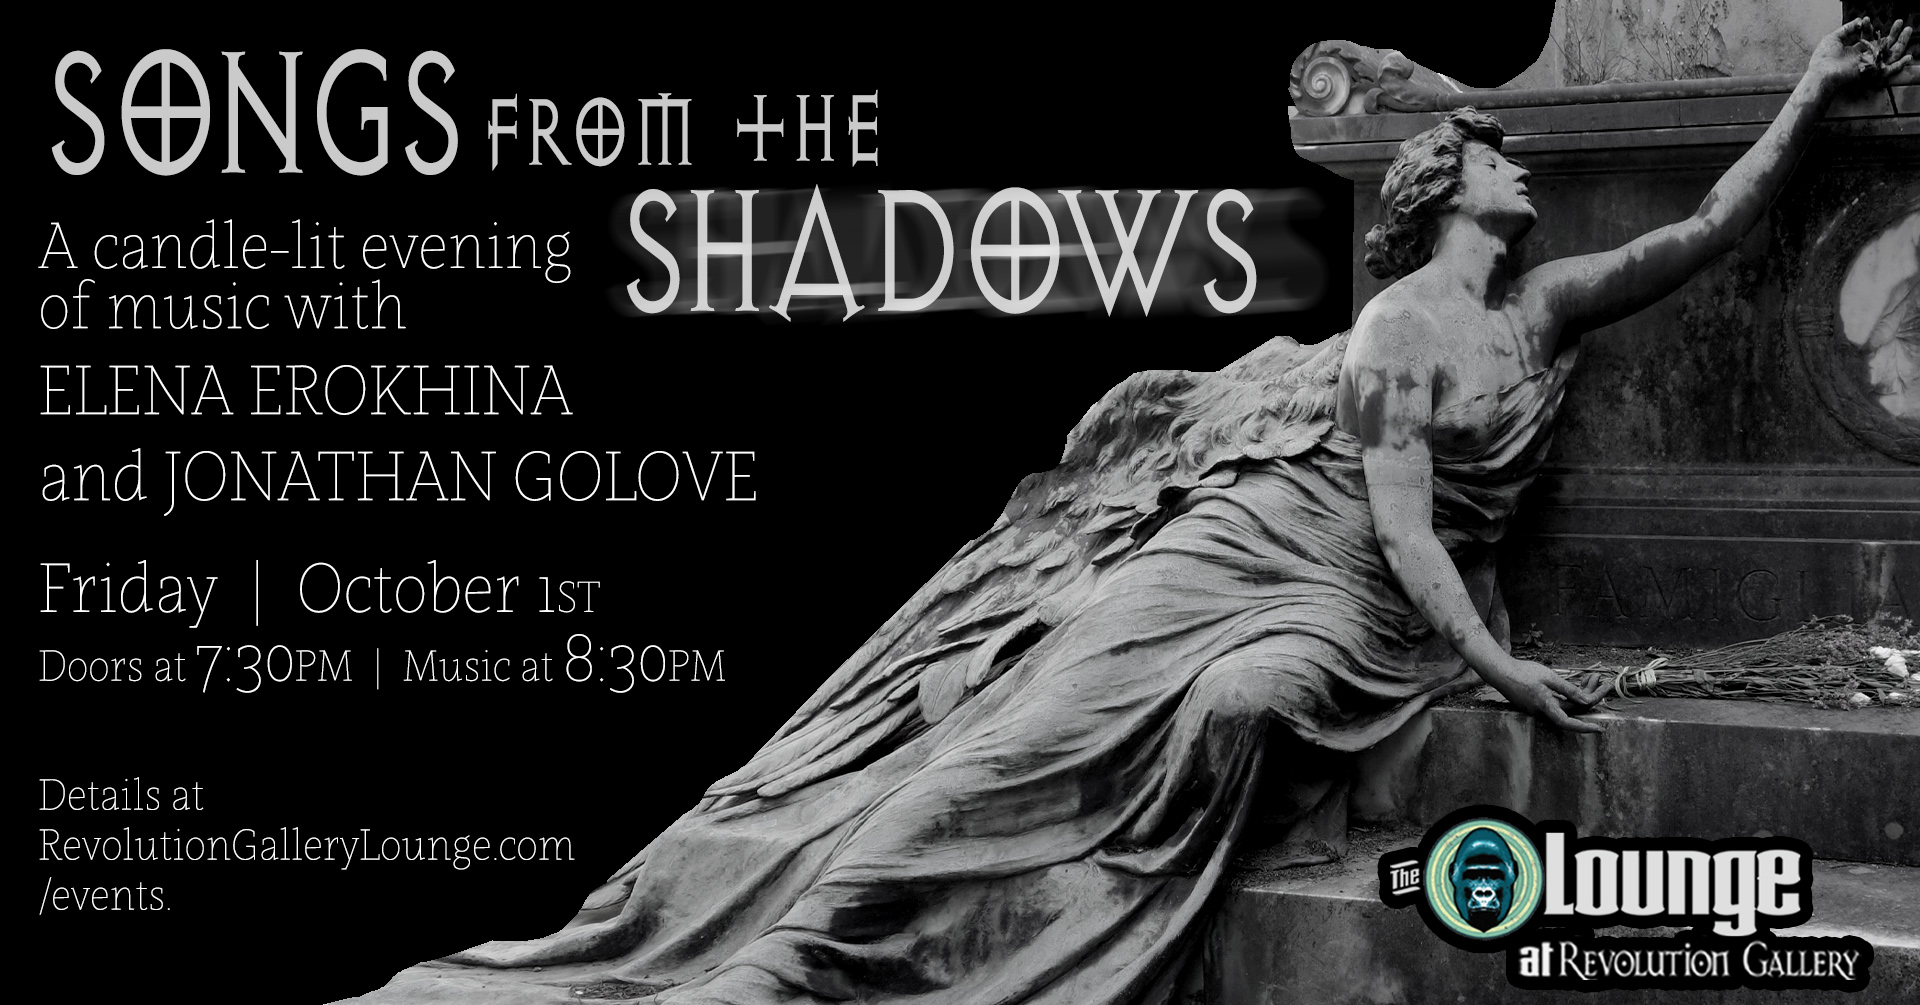 RGLSONGS_FROM_THE_SHADOWS_OCT2nd_FB_BANNER copy